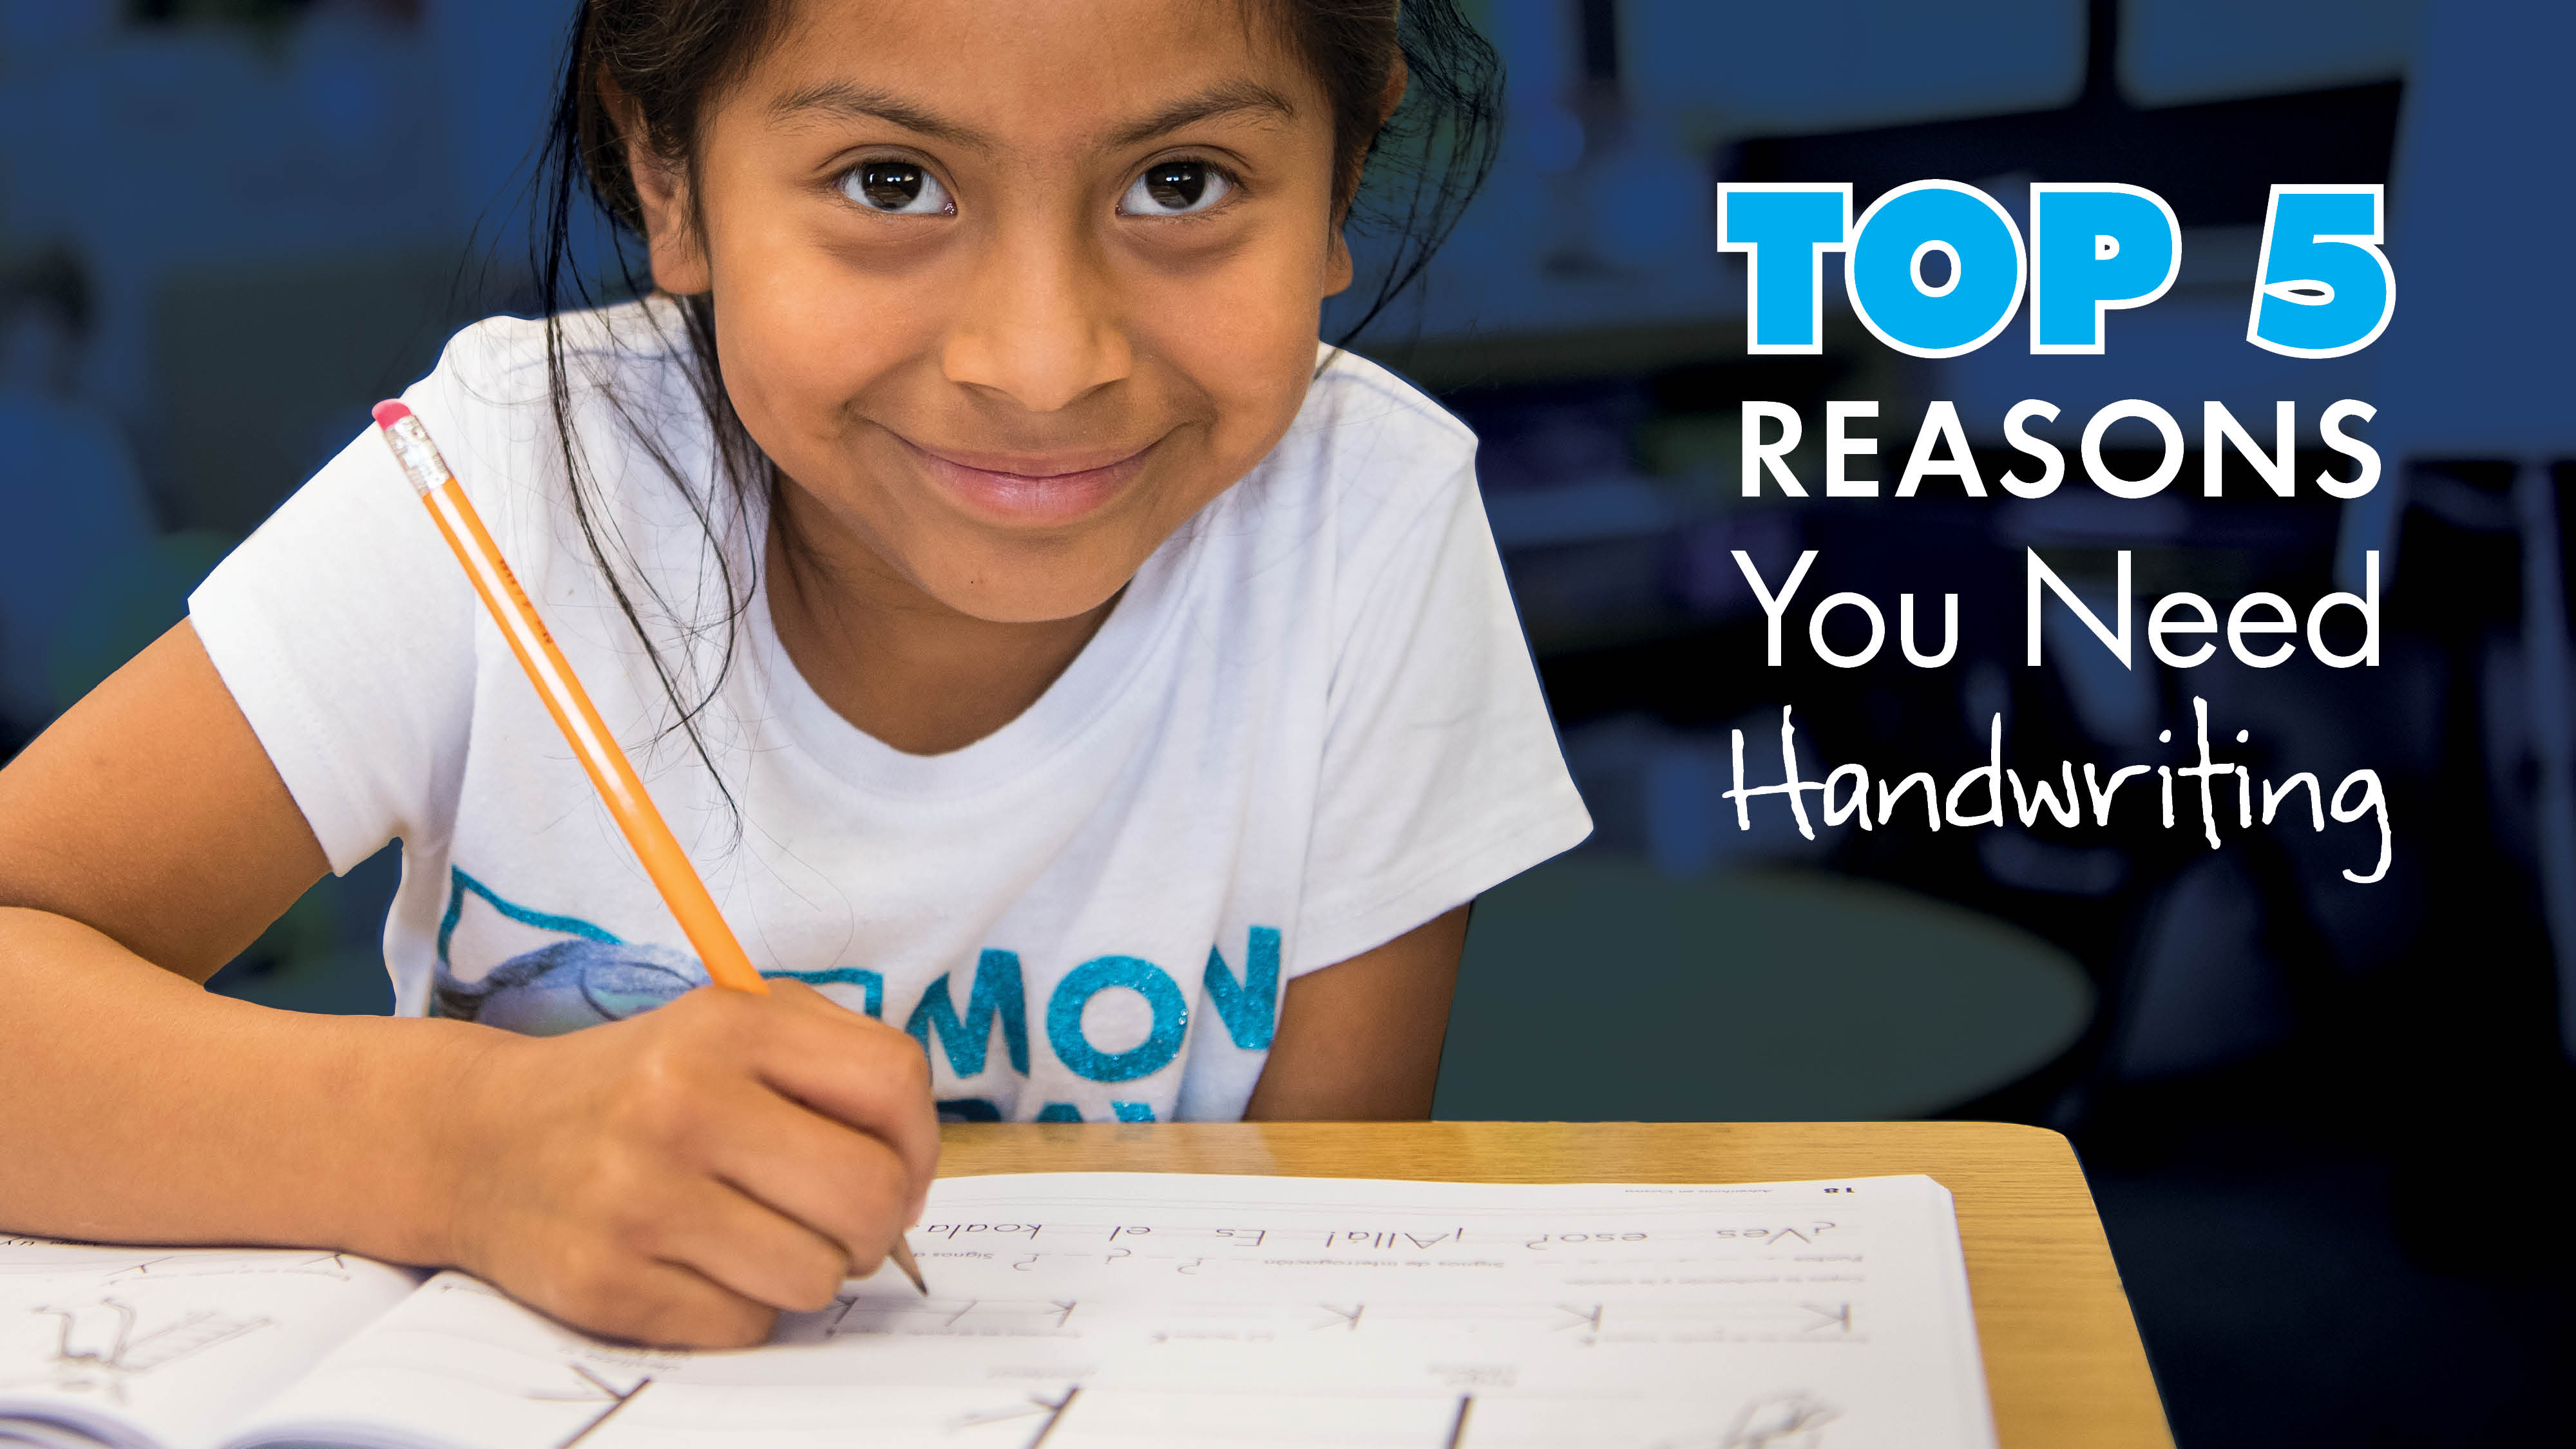 5 Reasons You Need Handwriting